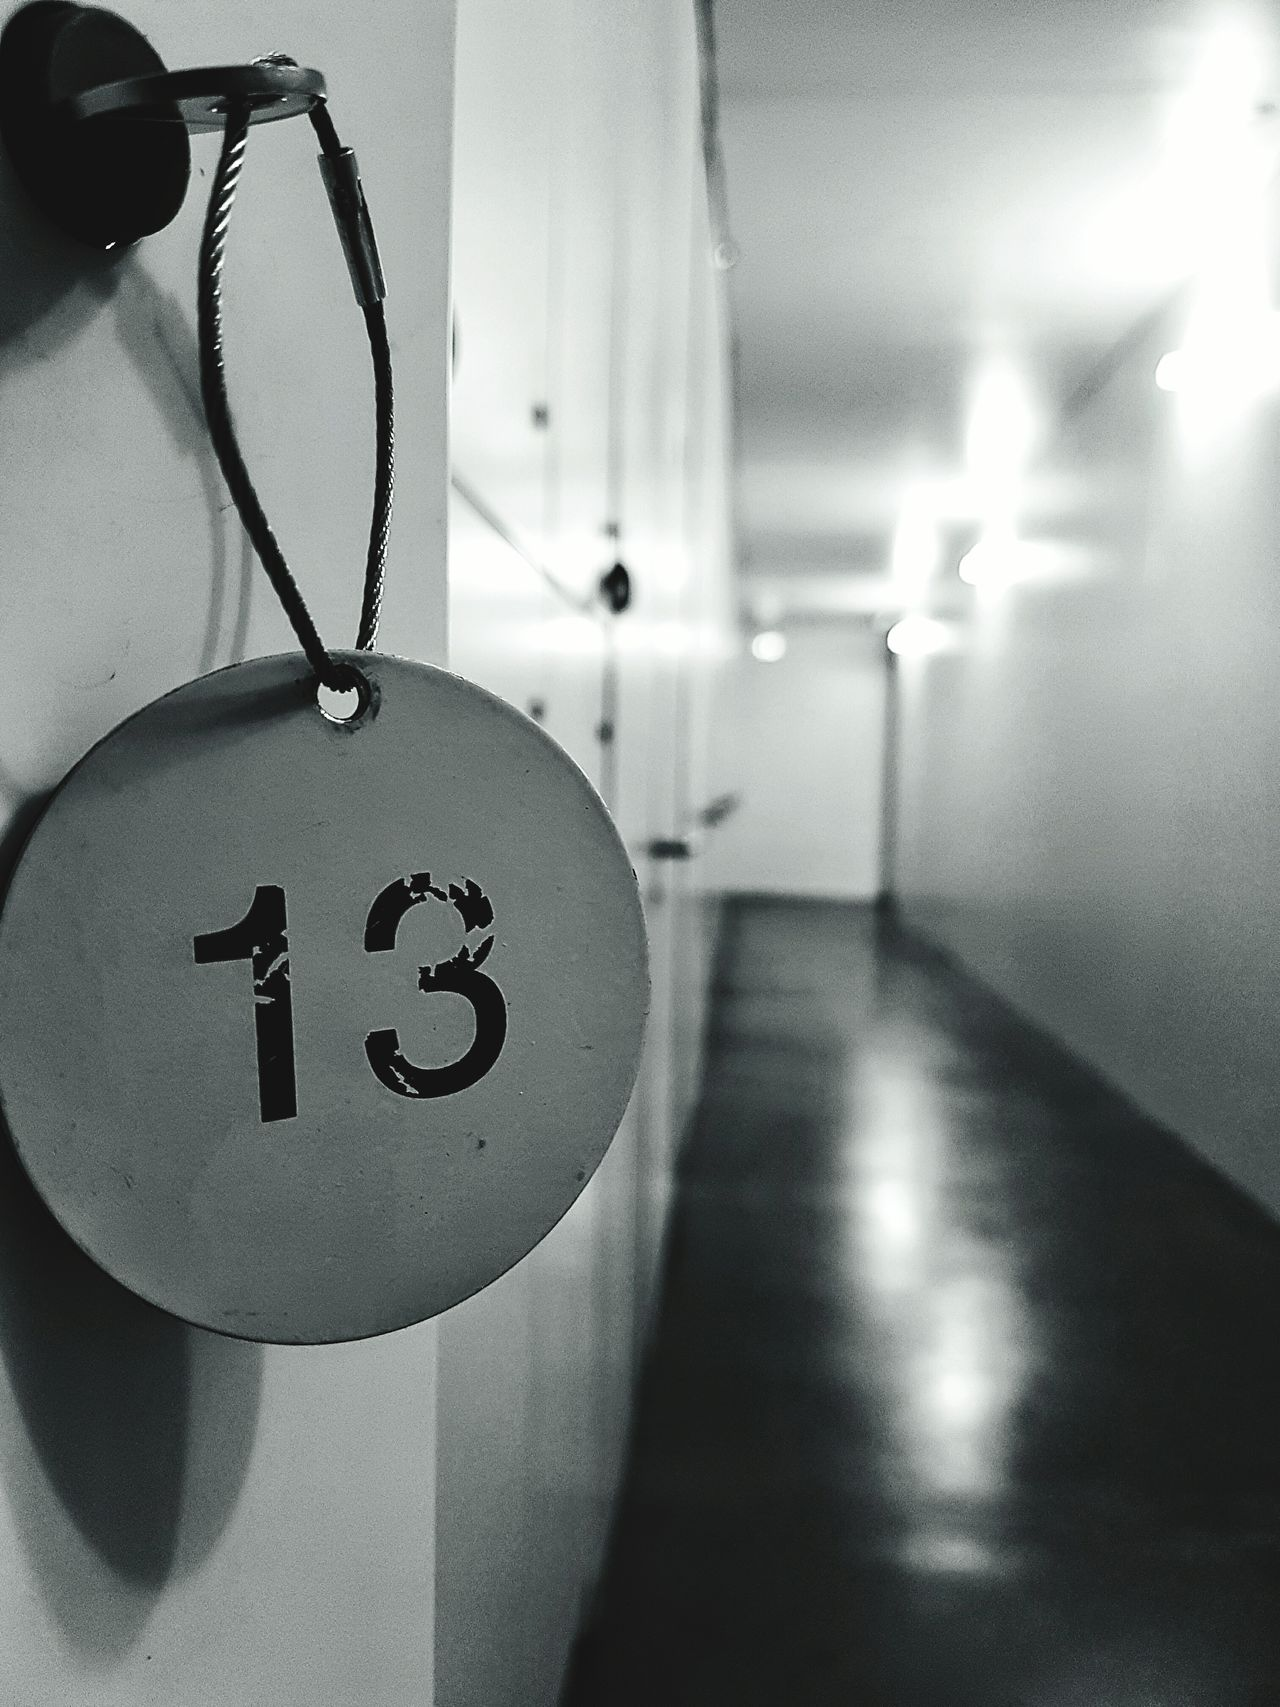 13 Number Digits Figure Locker Black And White Corridor Hallway Empty Nobody Simple Indoors  The Secret Spaces The Secret Spaces